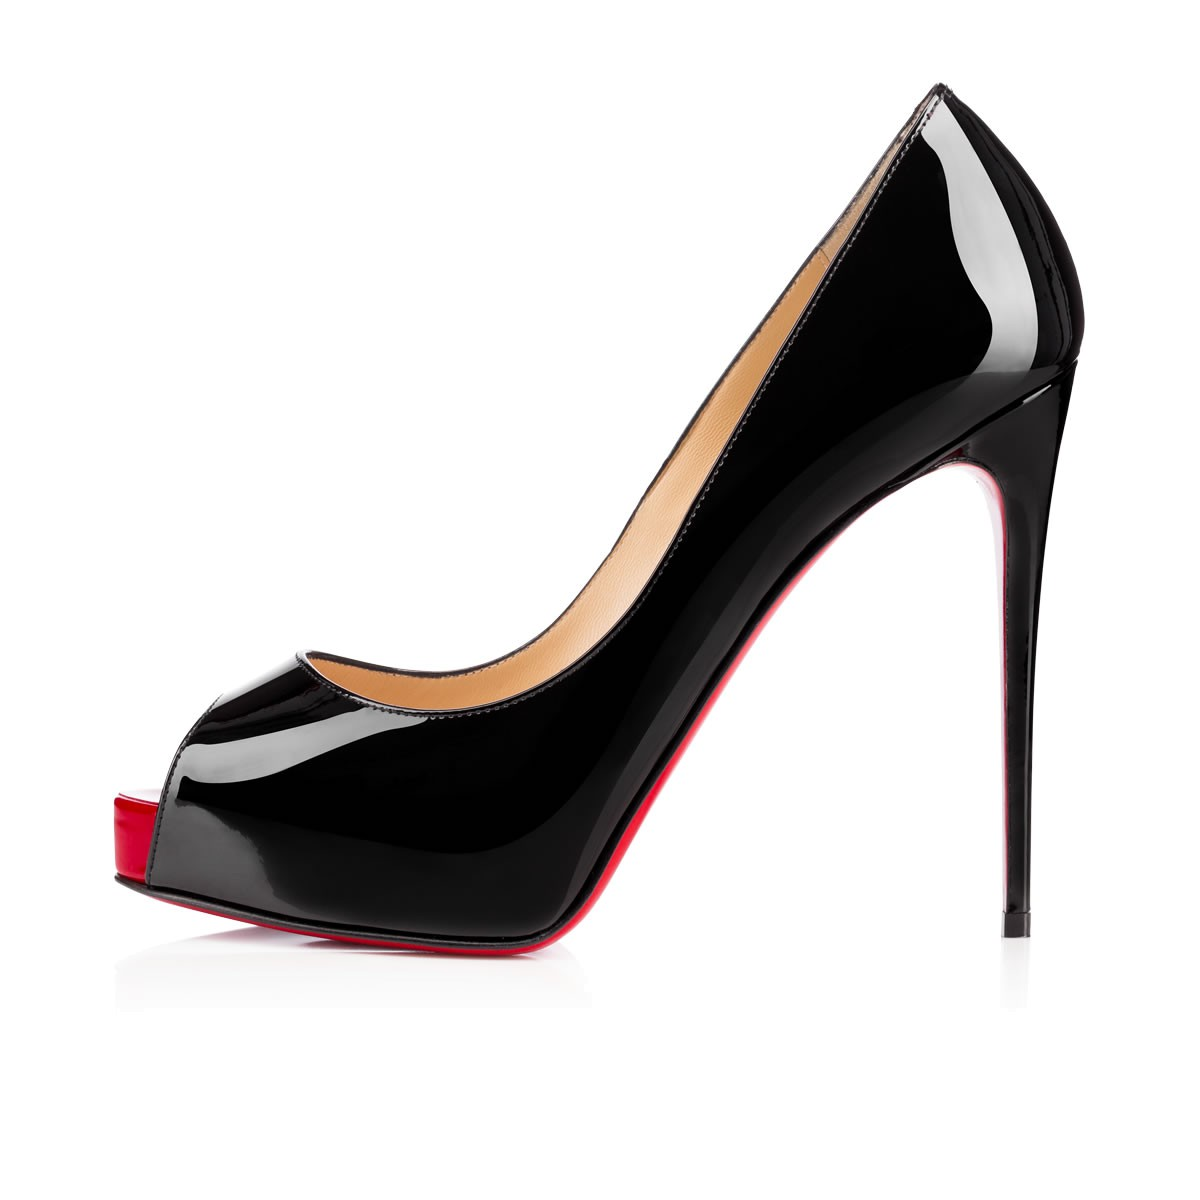 f5e9fb22c3 ... Shoes - New Very Prive - Christian Louboutin ...